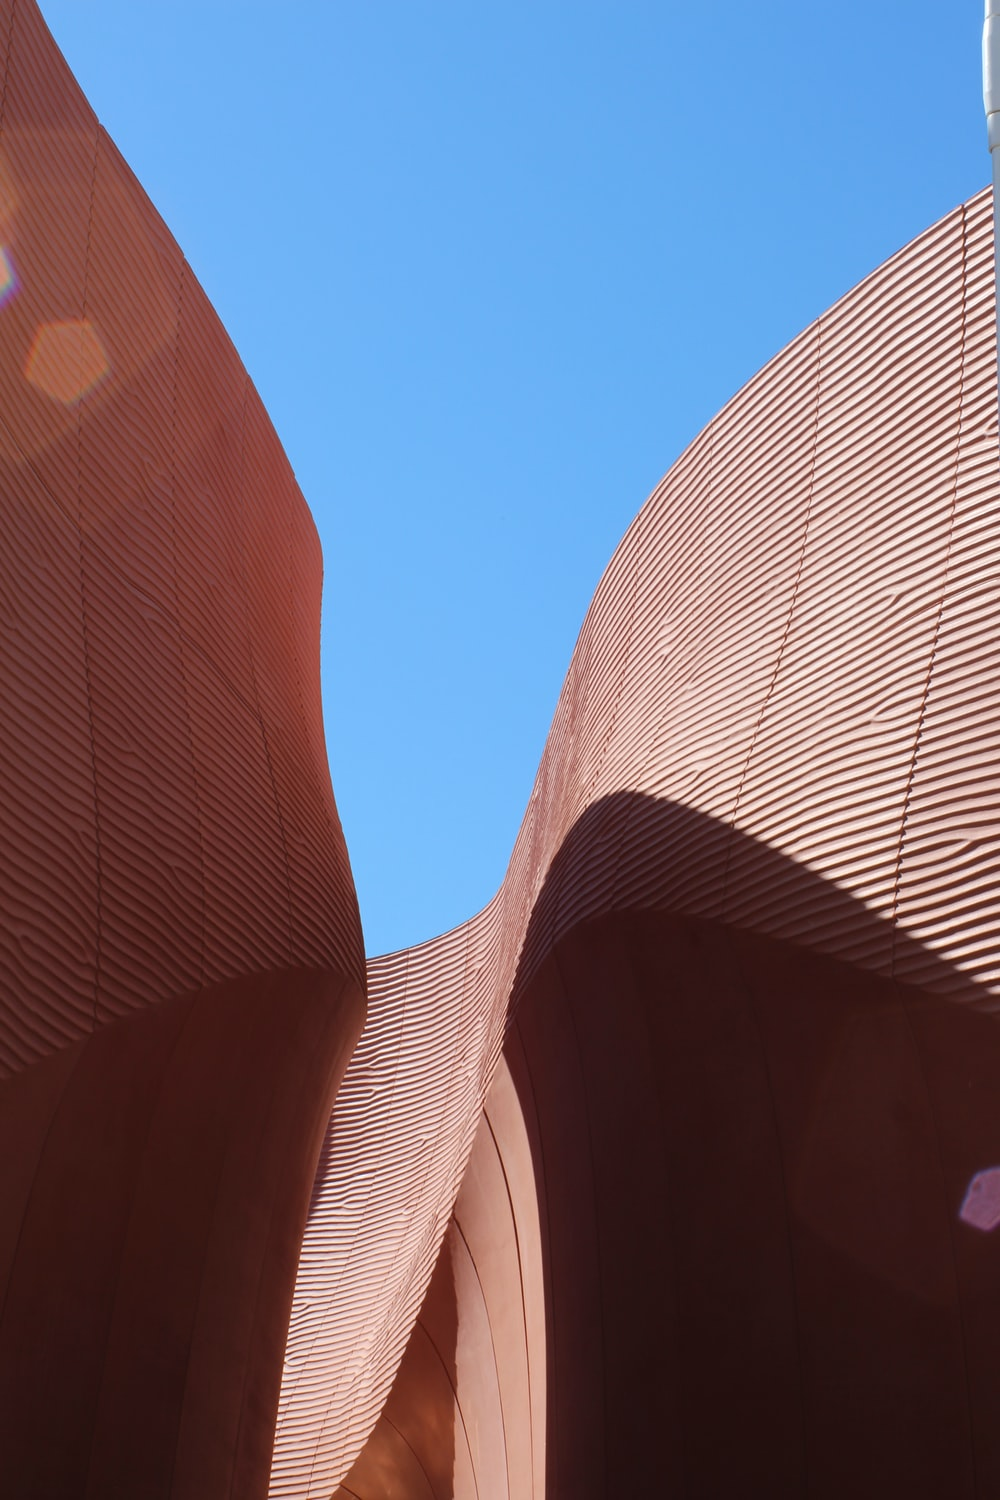 low-angle photo of brown architecture building